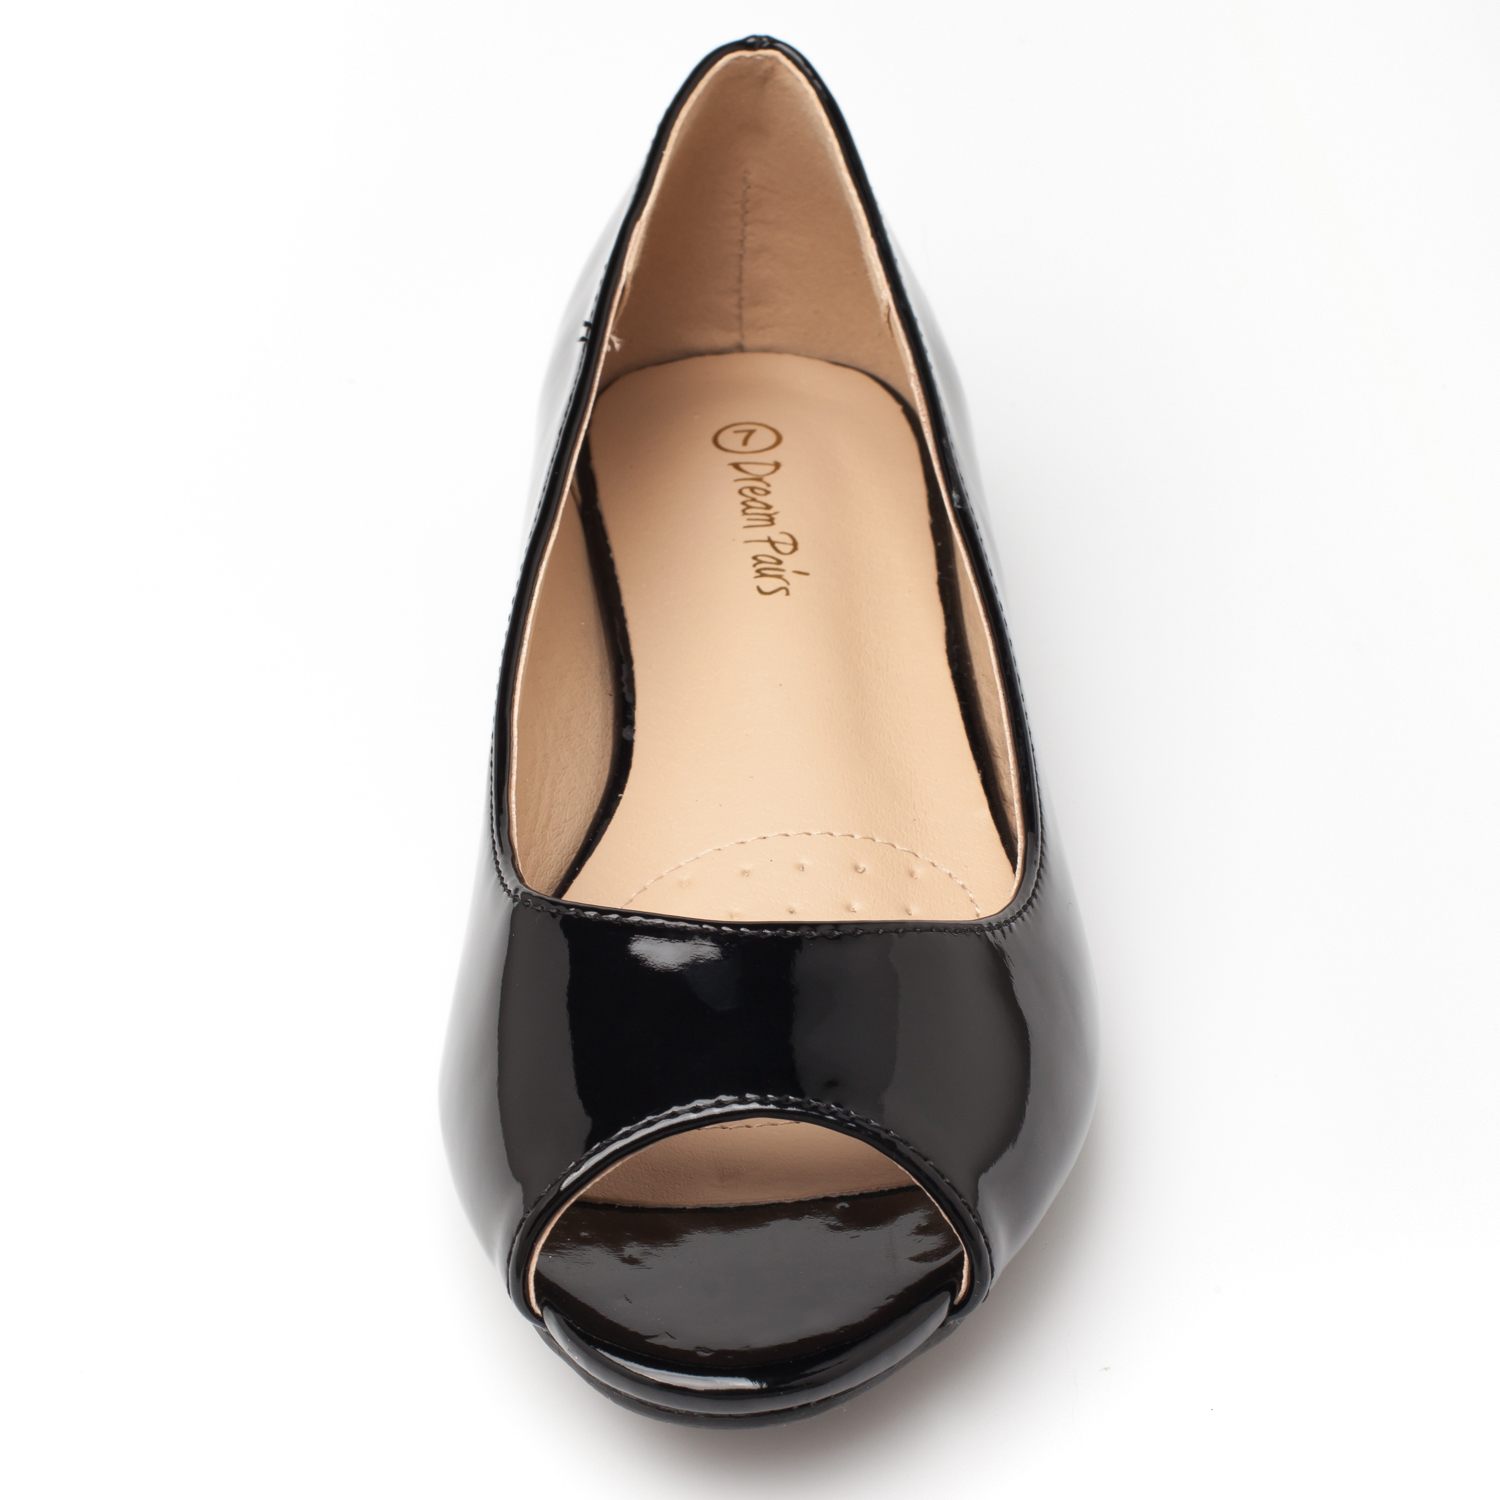 DREAM-PAIRS-Womens-Ballet-Flats-Low-Heel-Open-Toe-Slip-On-Dress-Flat-Shoes thumbnail 37